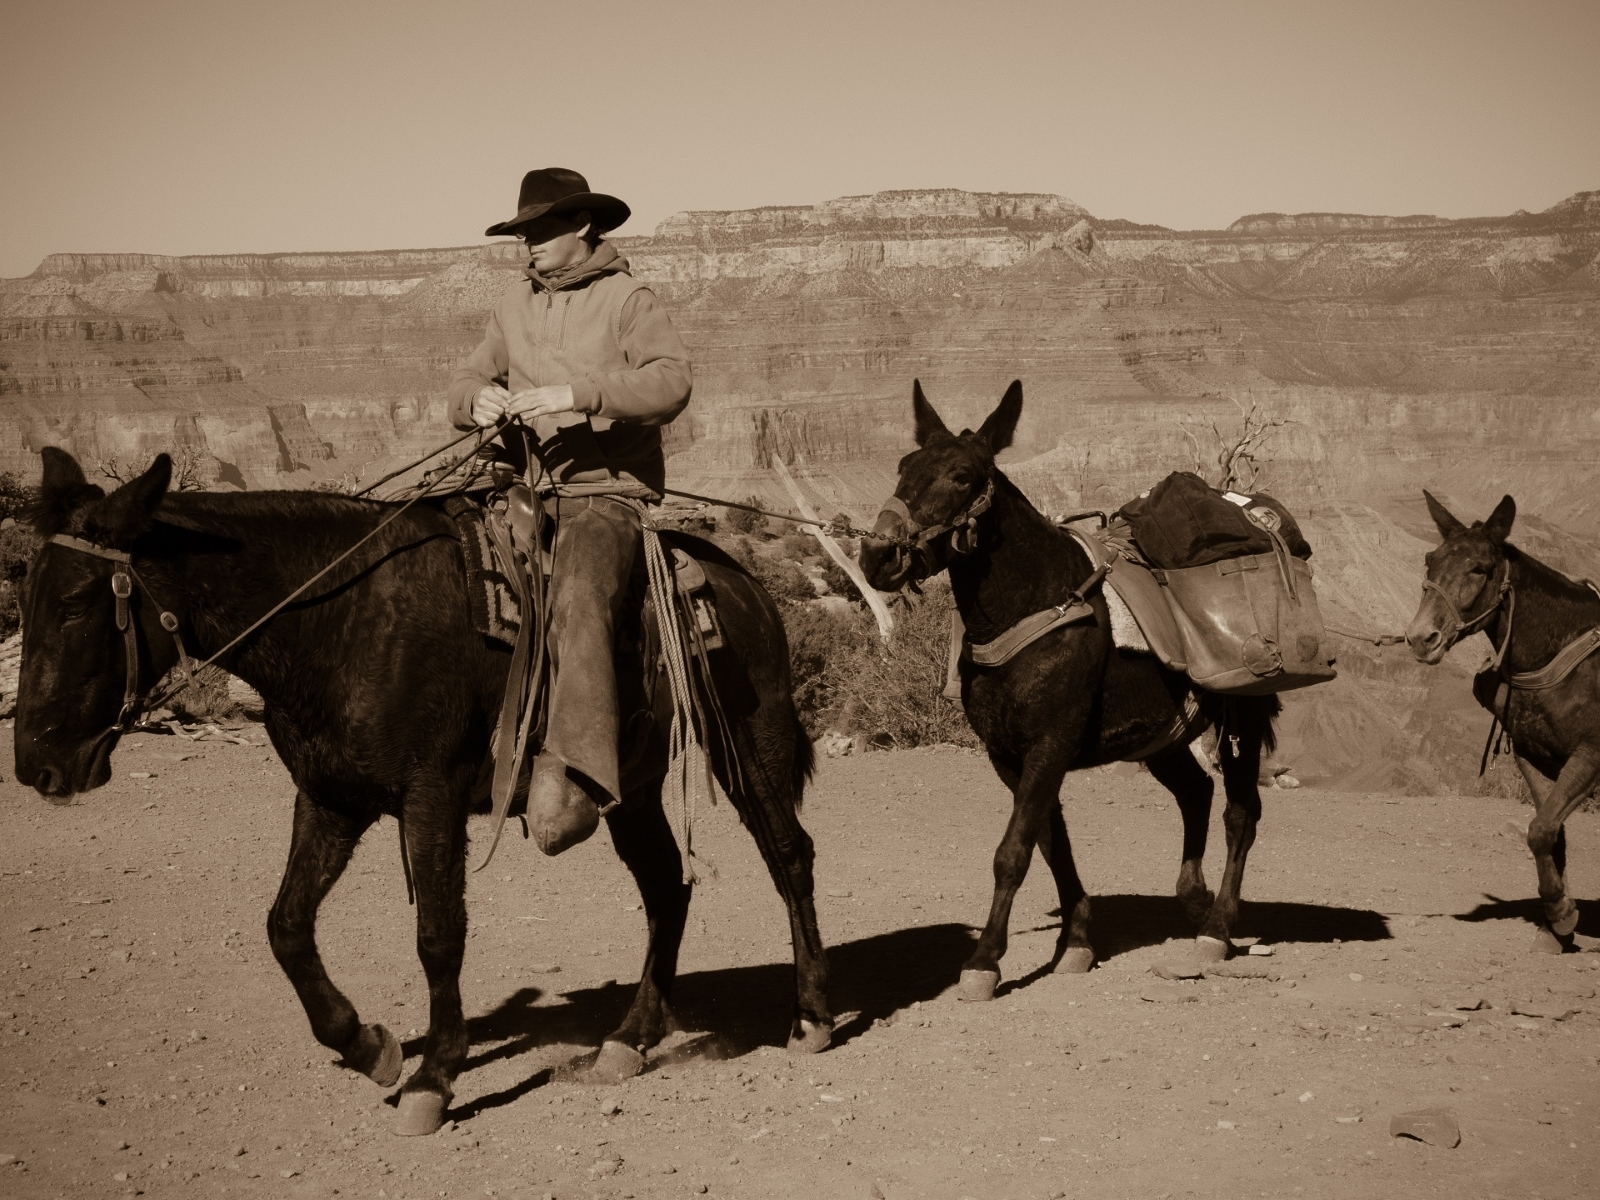 Wranglers-ensure-that-mail-and-supplies-get-safely-to-Phantom-Ranch-Grand-Canyon-JB-1-Place-by-Zina-Mirsky-RO